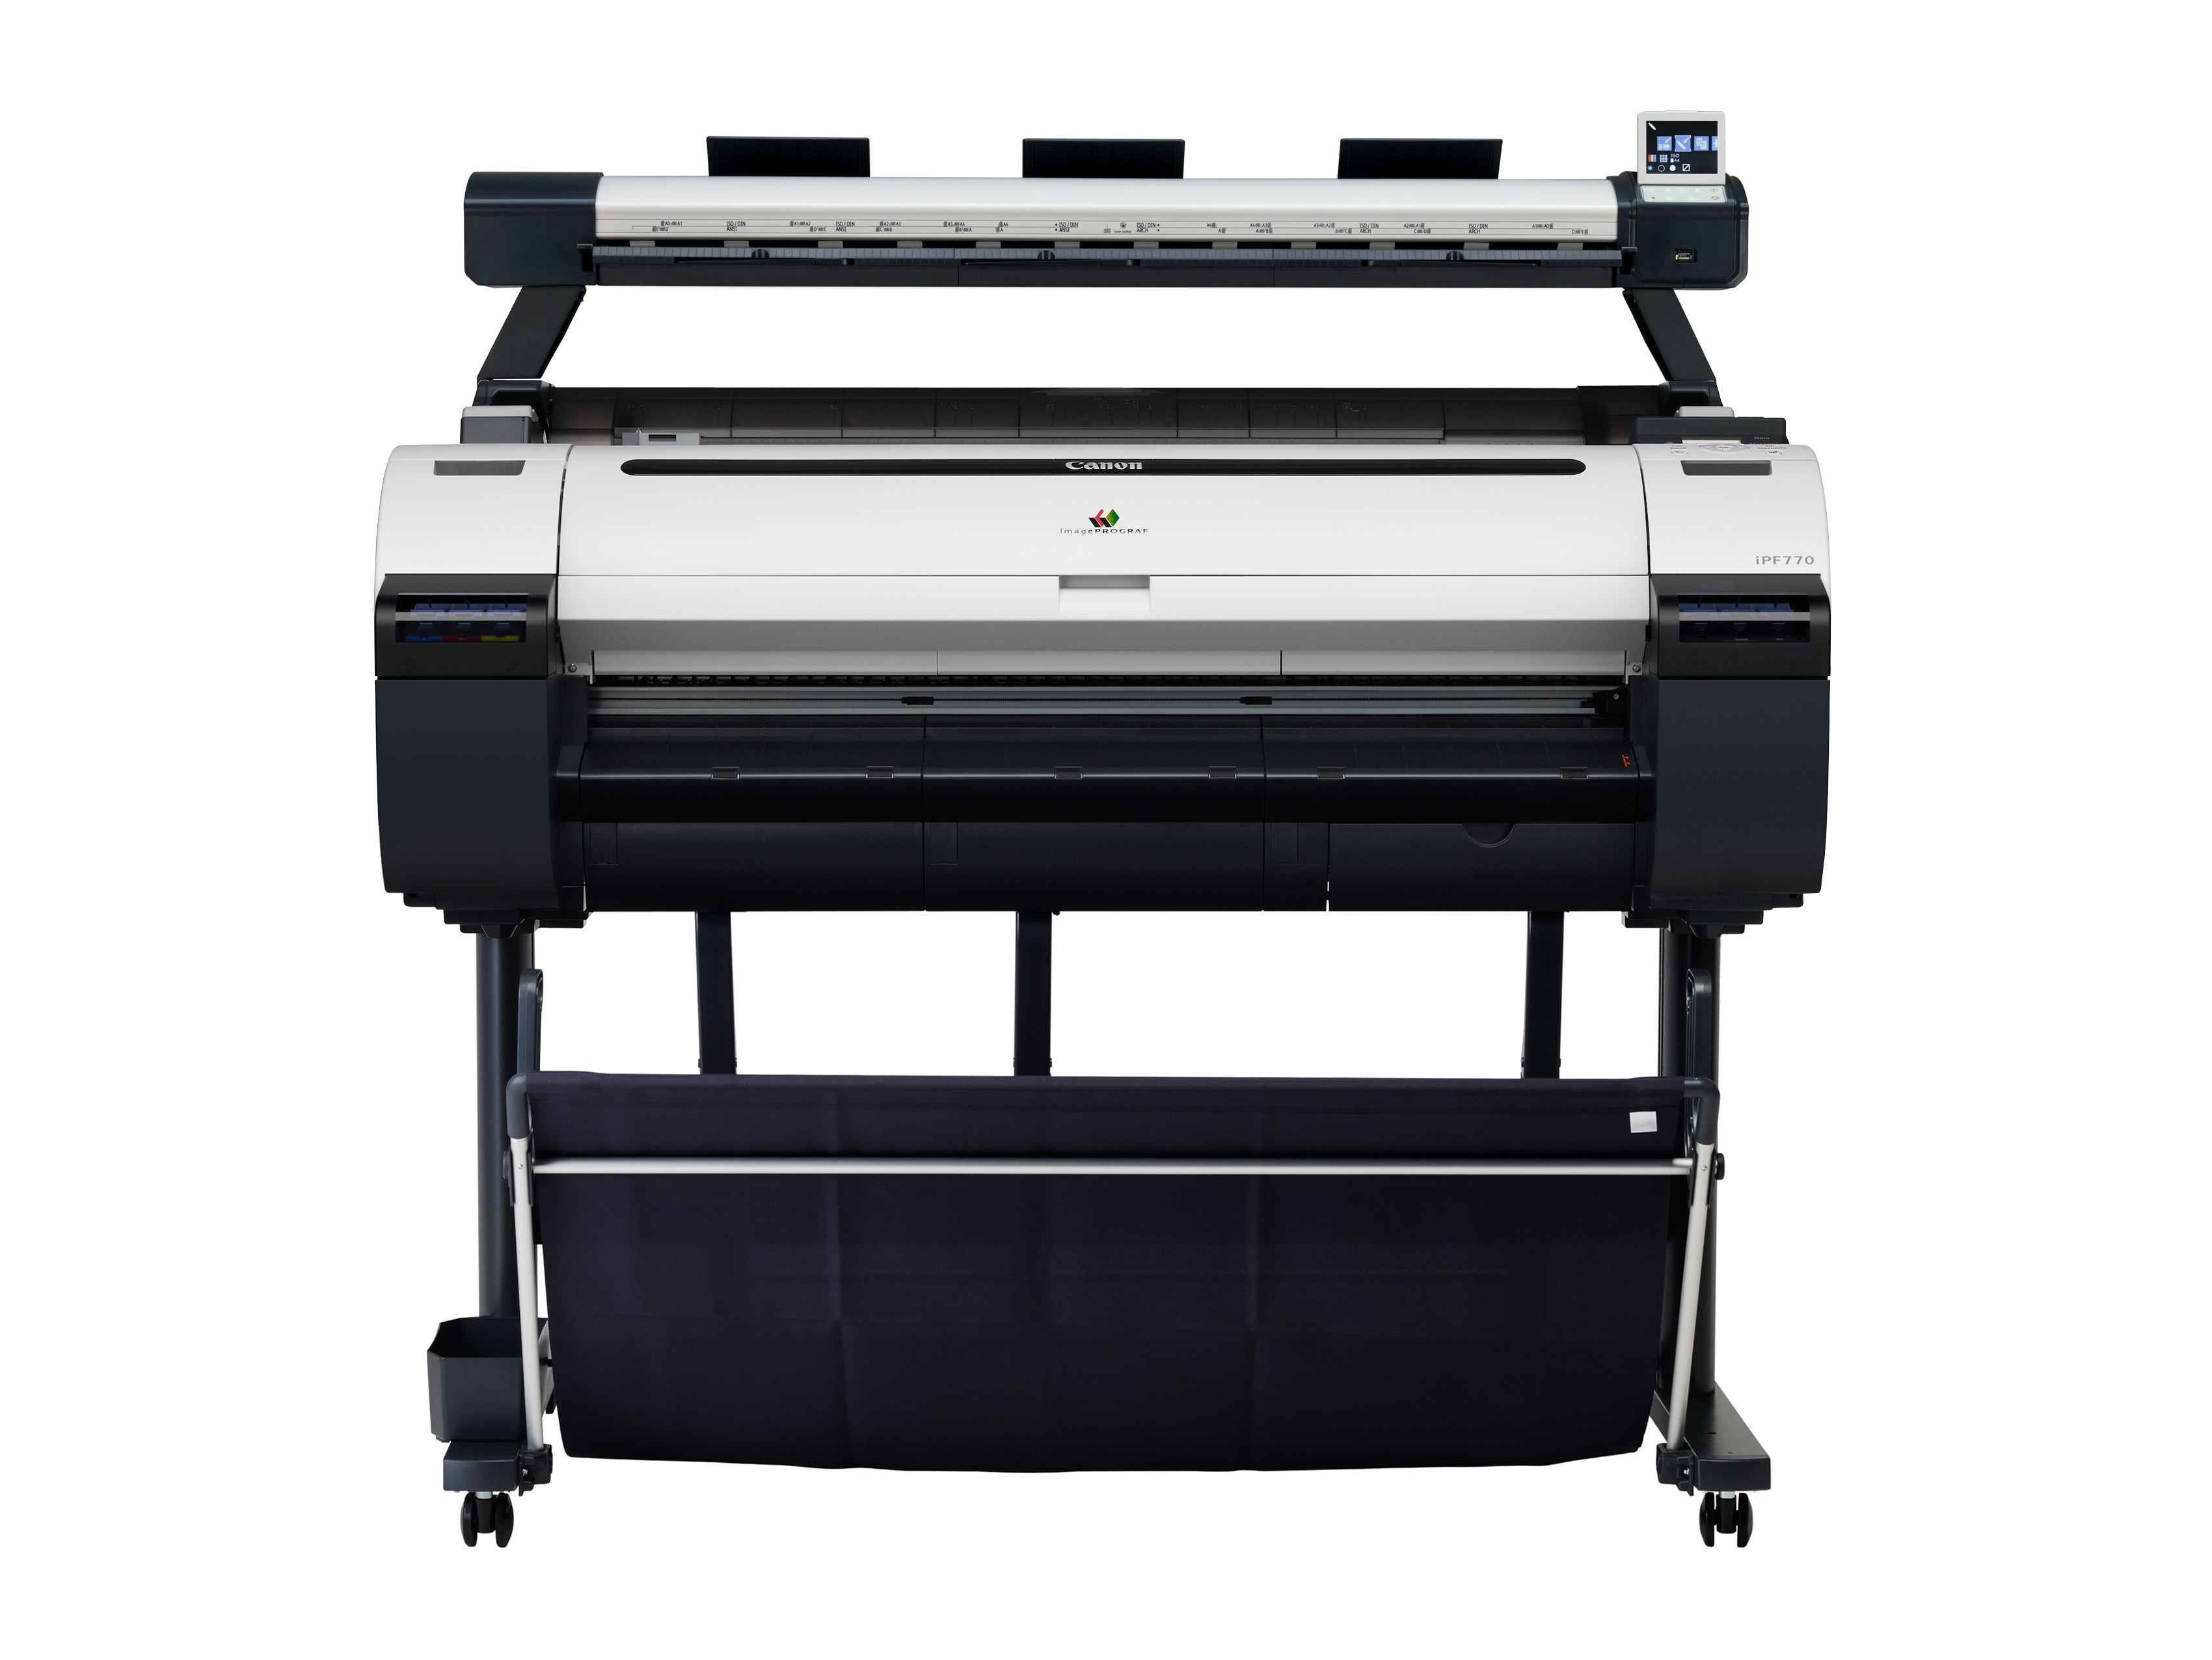 Canon Mfp 770 36 Plotter Paper Supplies Wide Format